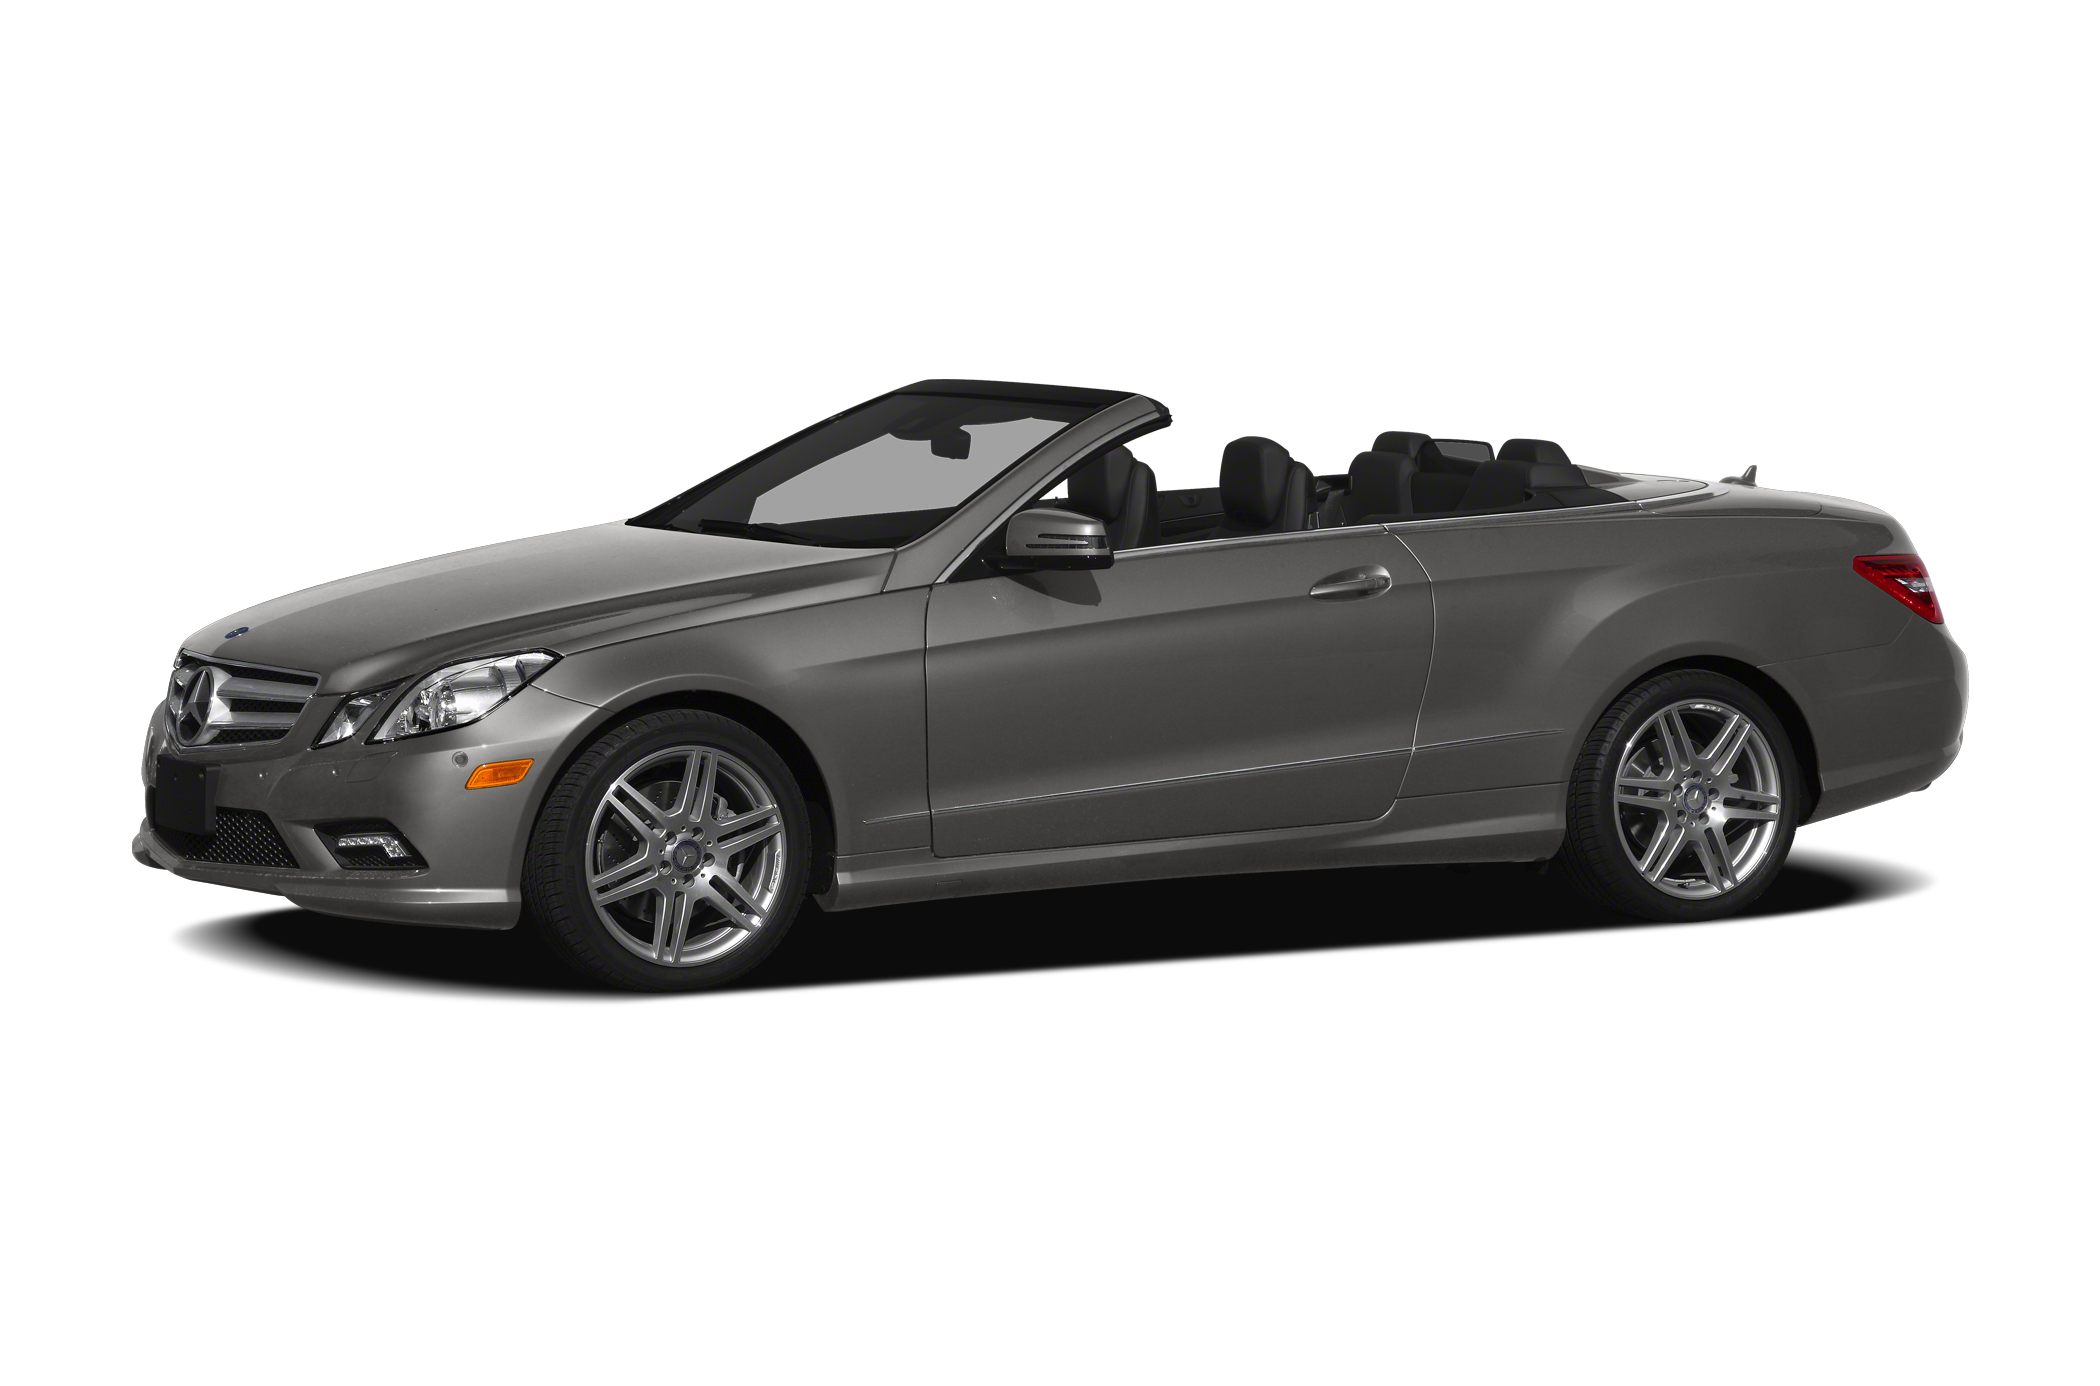 2011 Mercedes-Benz E-Class E350 Cabriolet Convertible for sale in Manassas for $34,999 with 29,688 miles